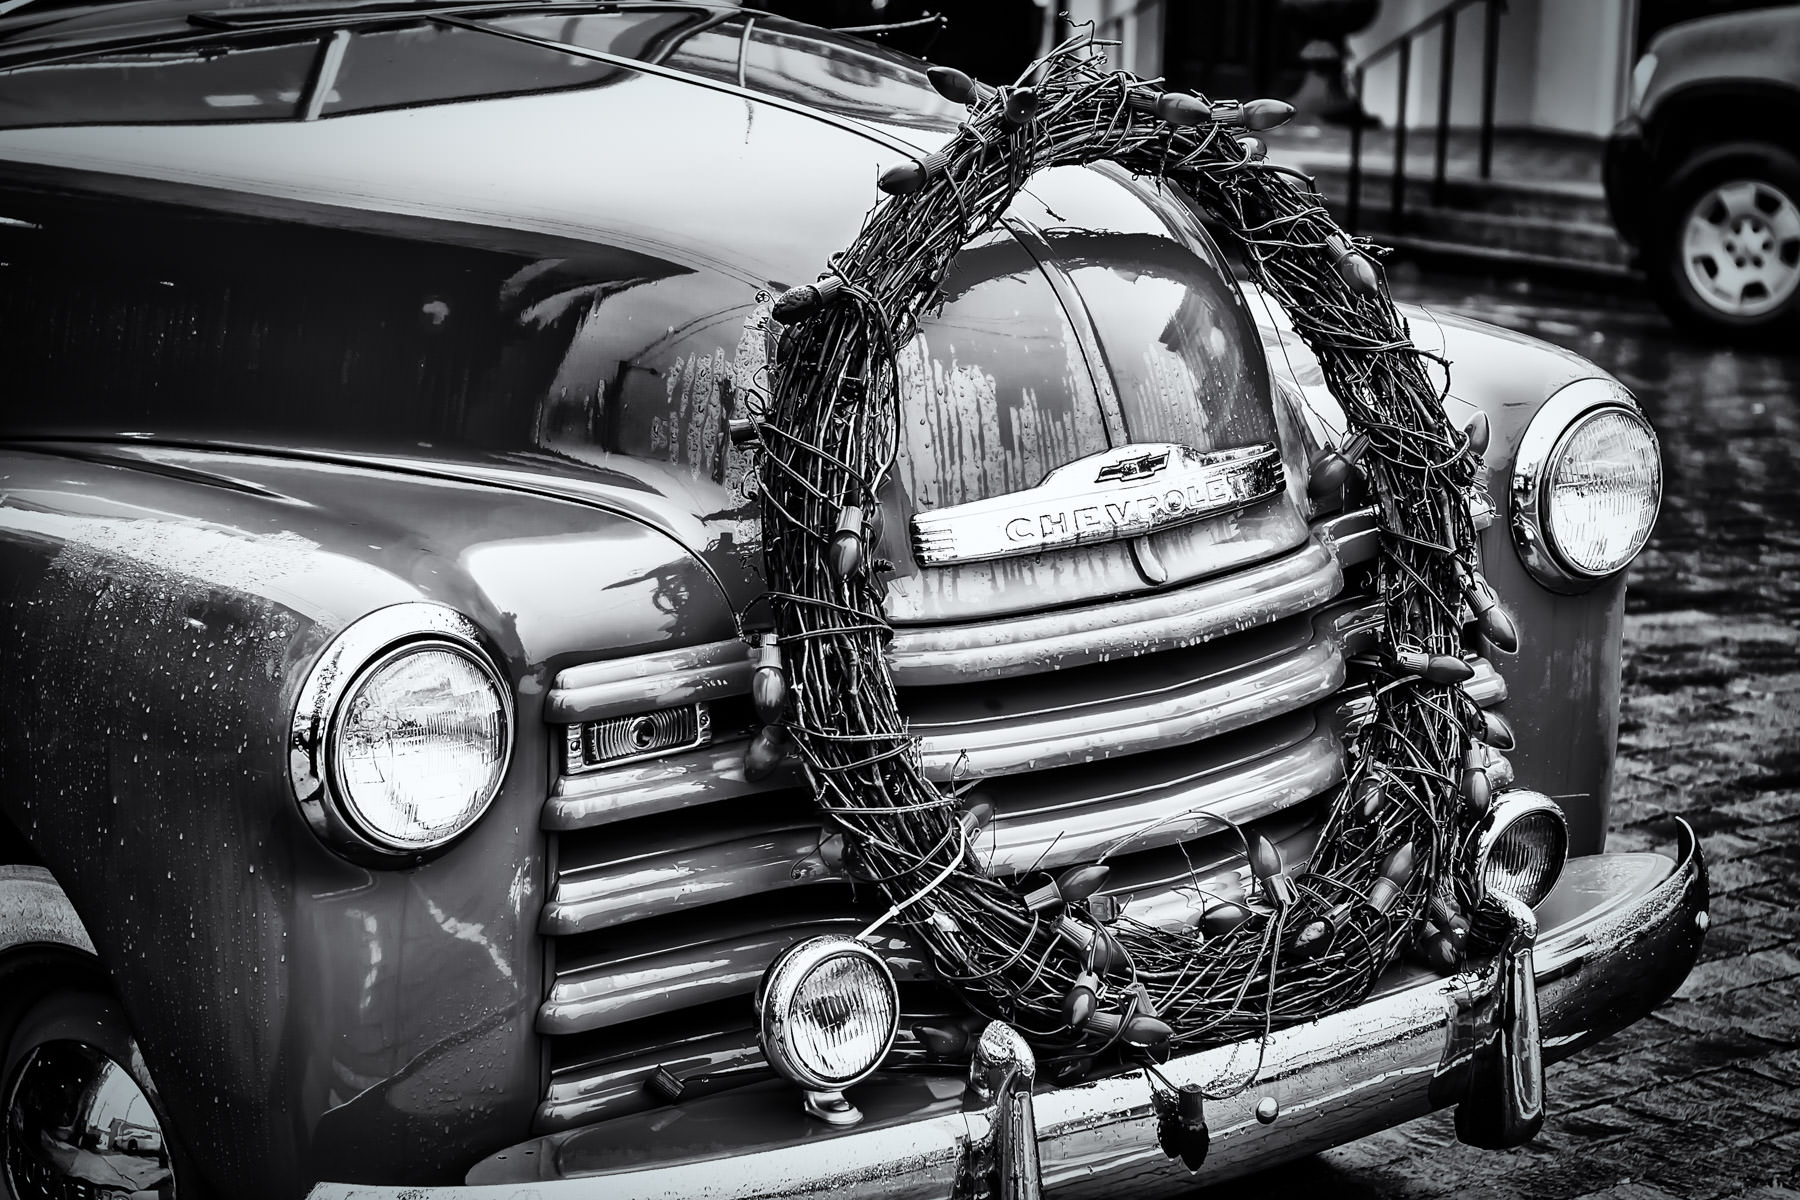 An old Chevrolet pickup truck decorated with a Christmas wreath in Jefferson, Texas.